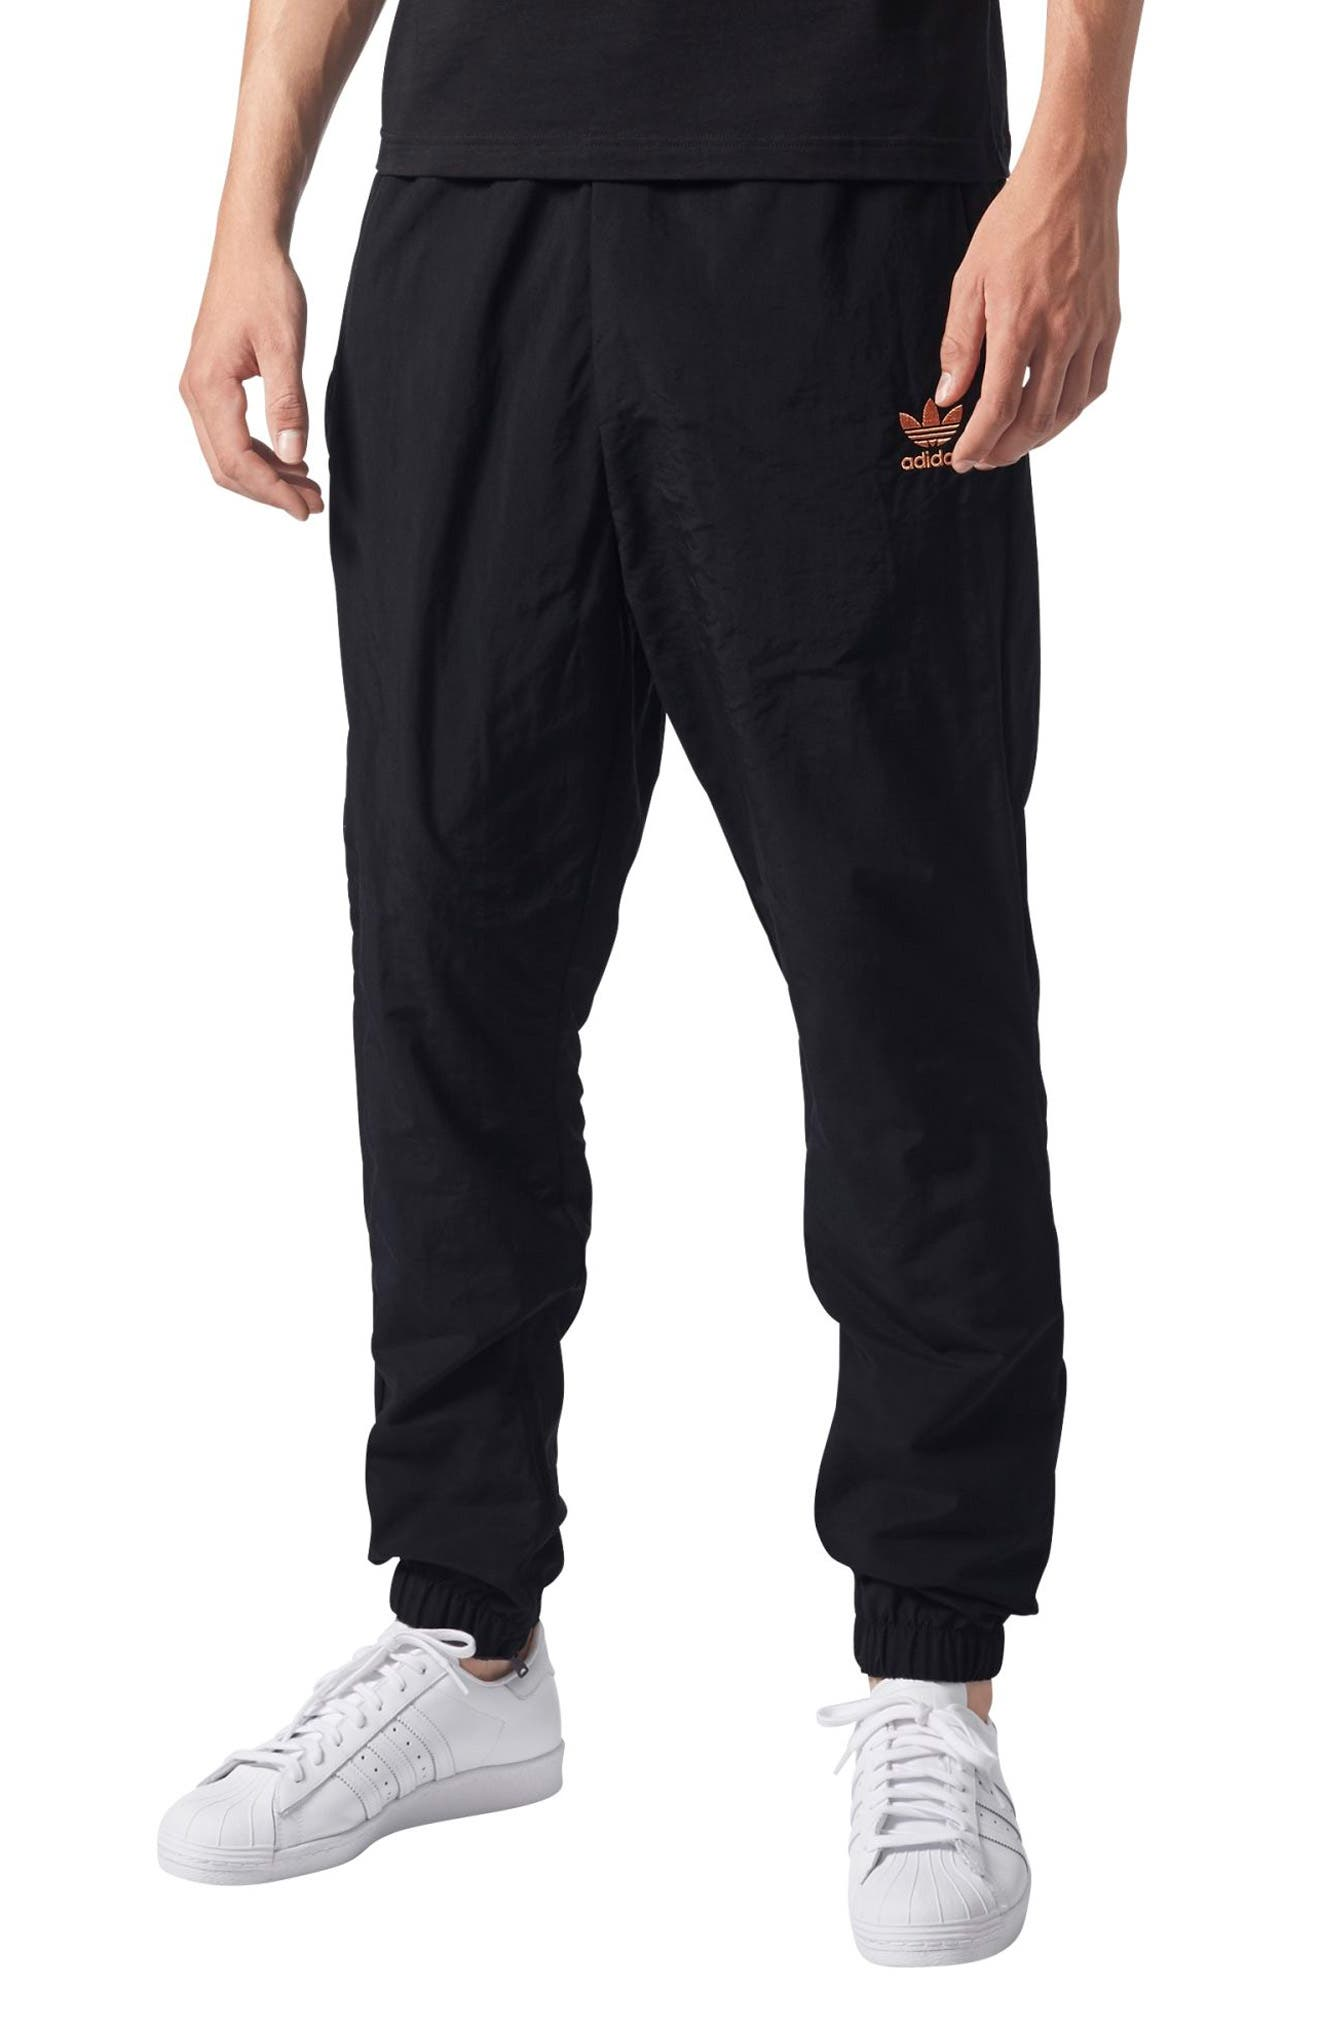 adidas Originals Pharrell Williams Hu Hiking Track Pants